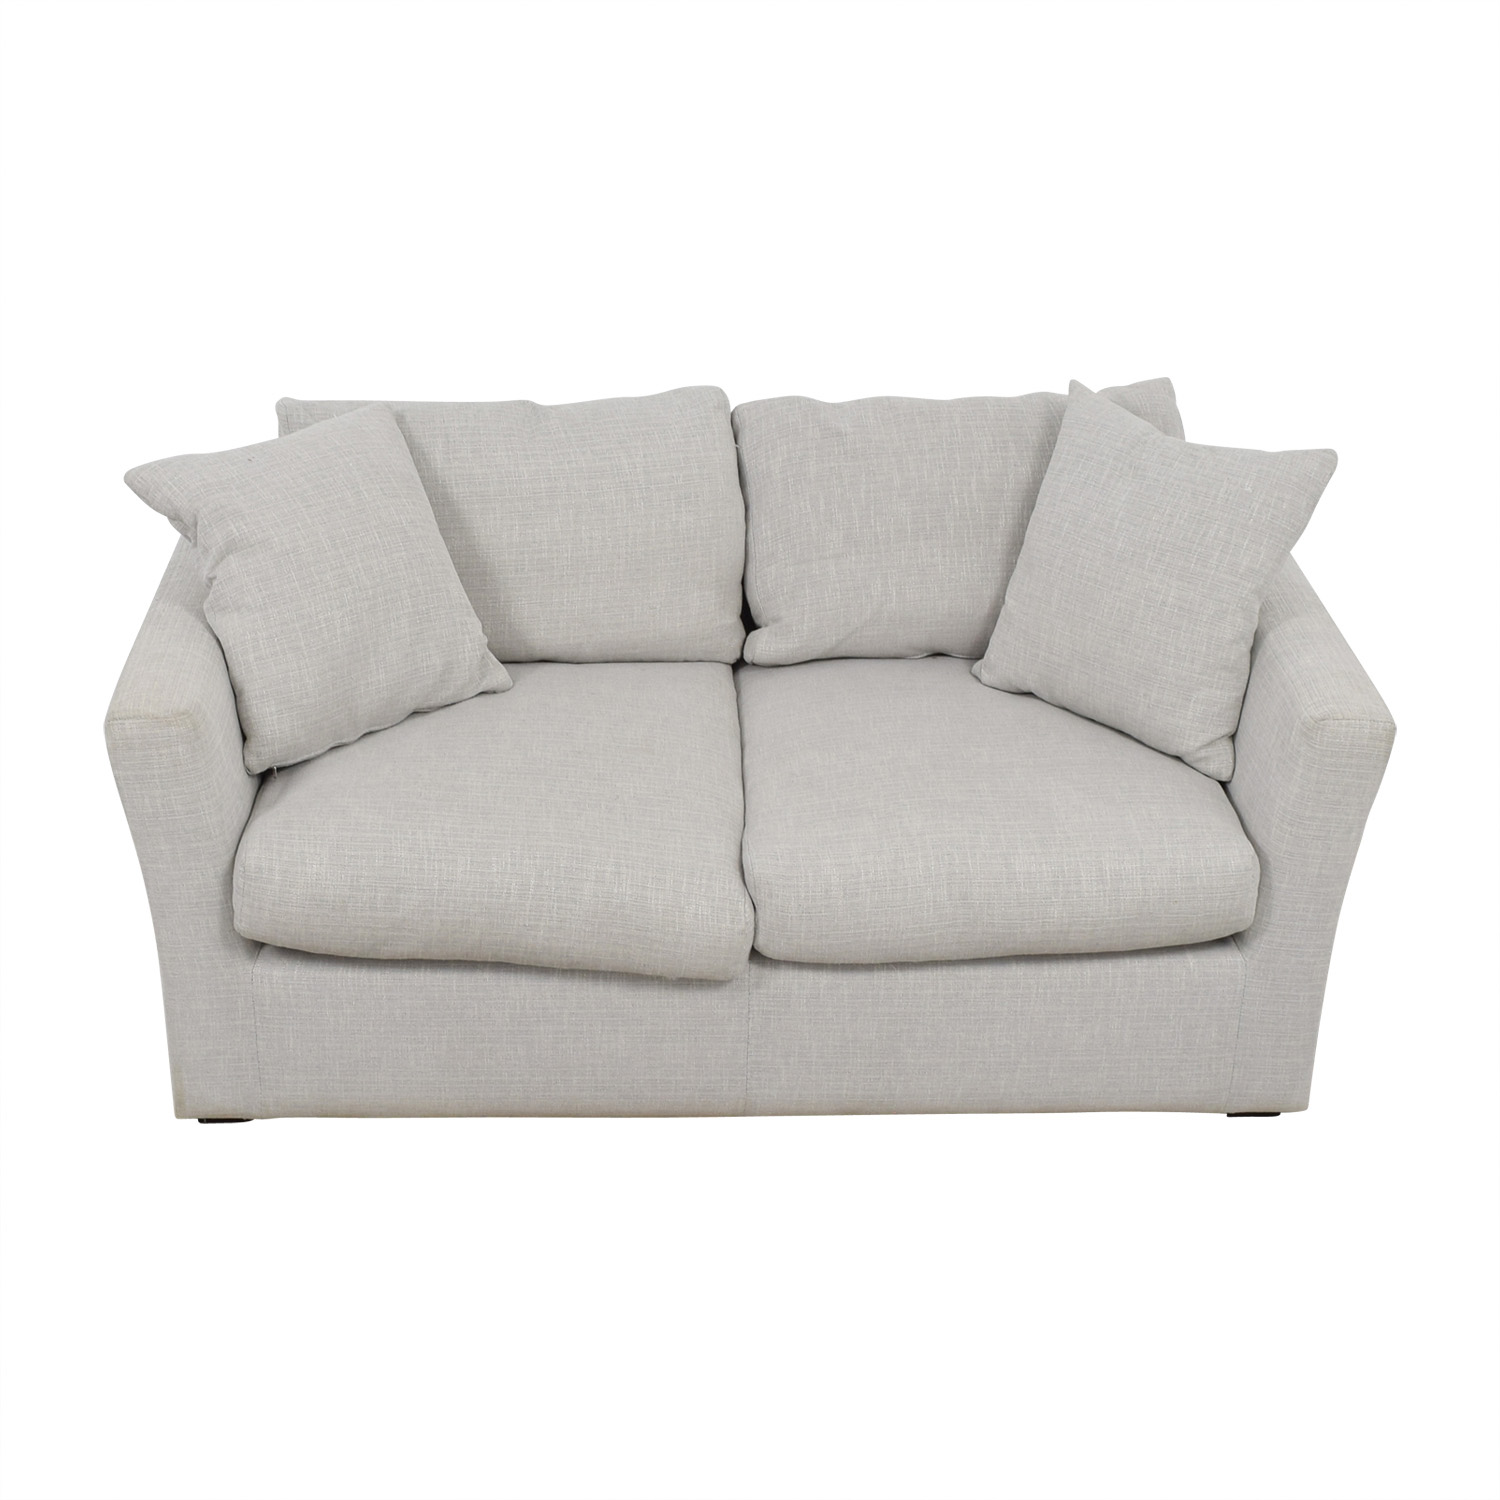 loveseats modern loveseat woptional w image p leather items white optional set sofa